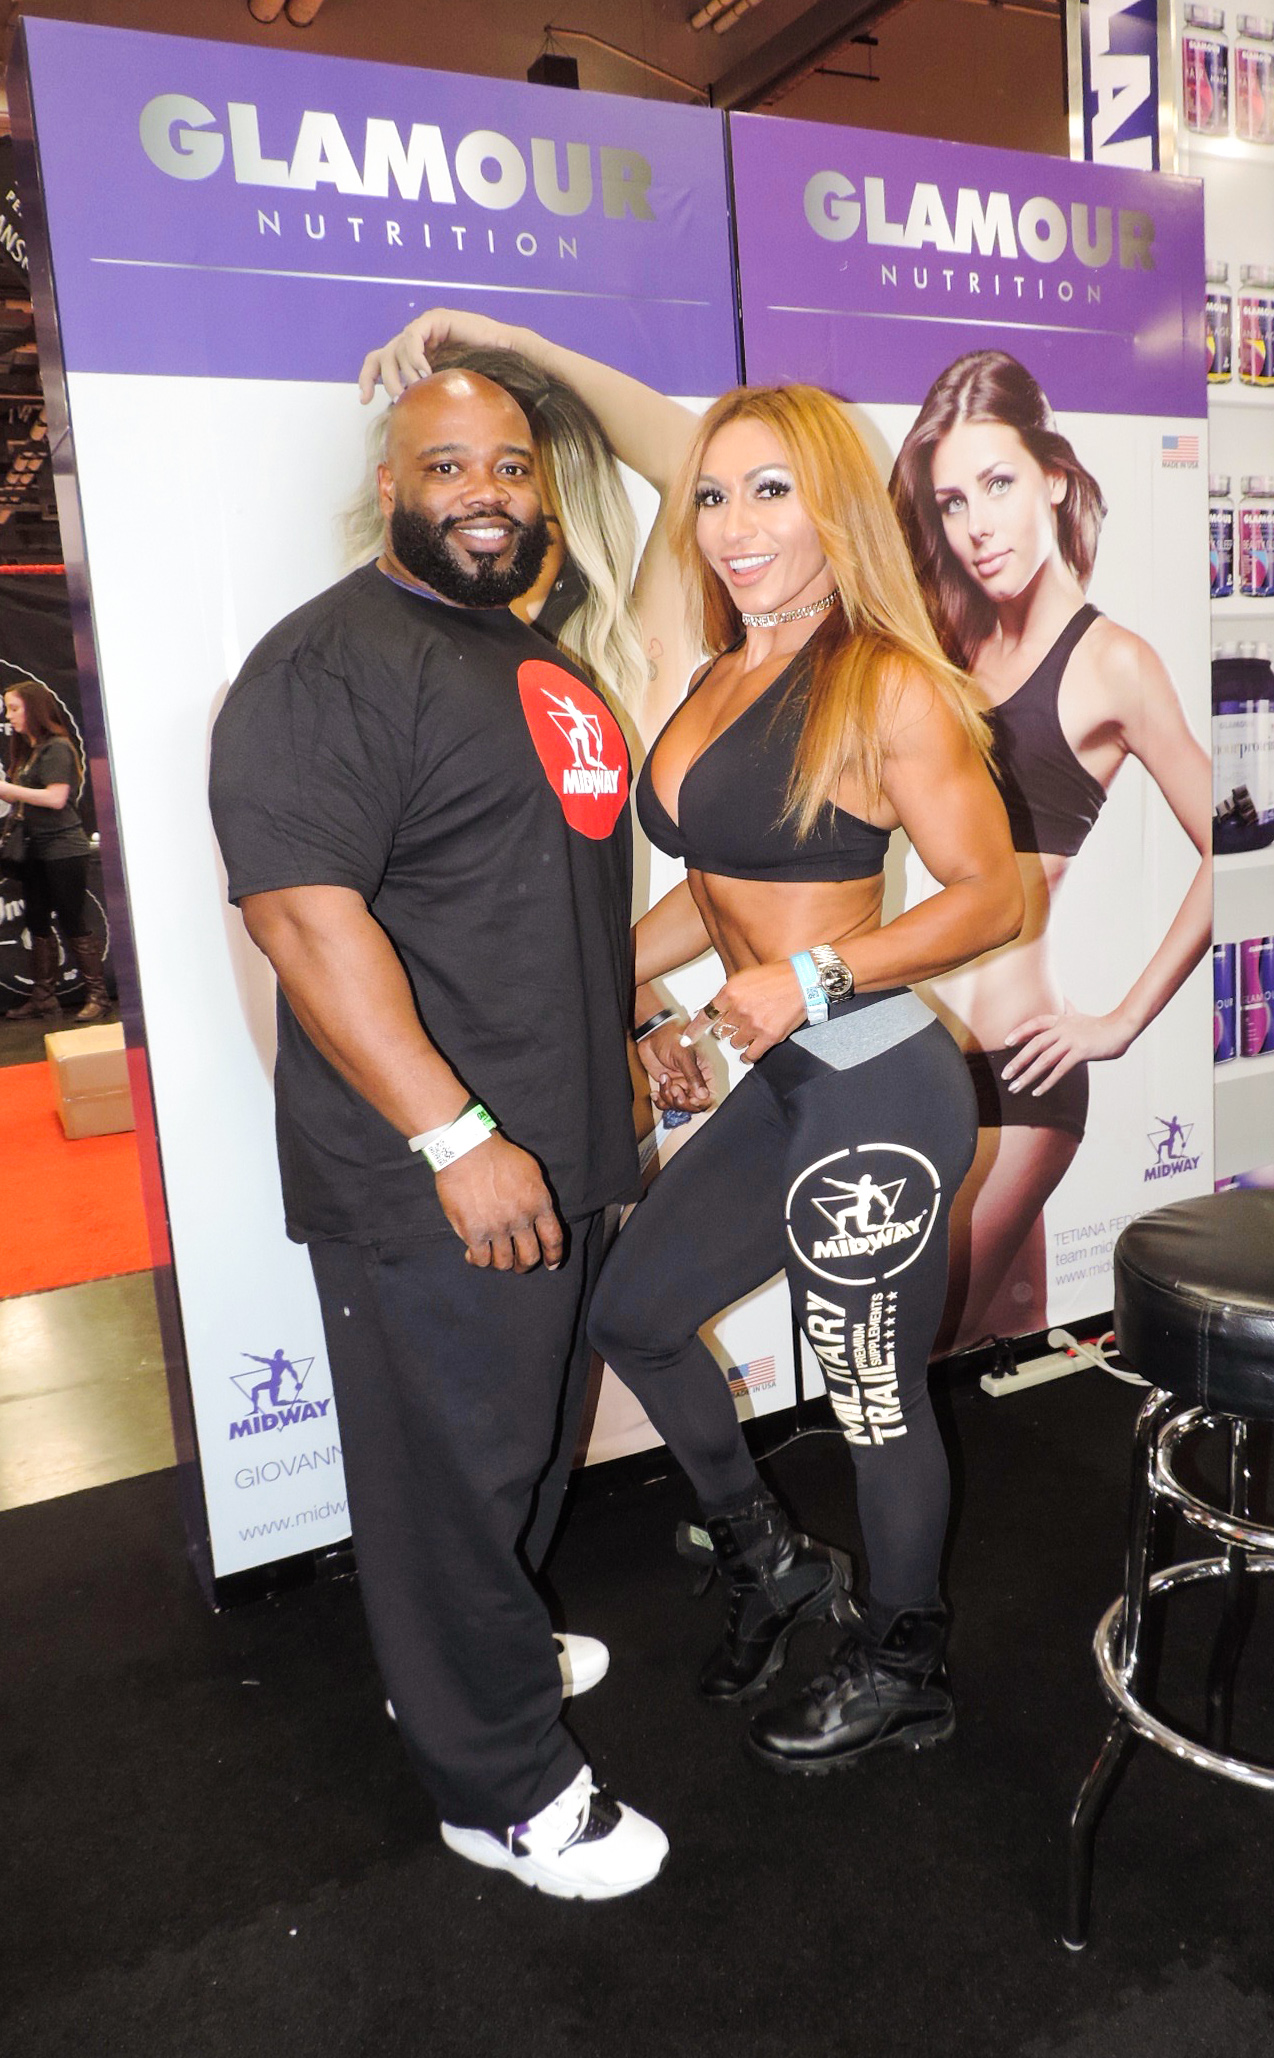 Karina Nascimento posing for a picture with a fan.